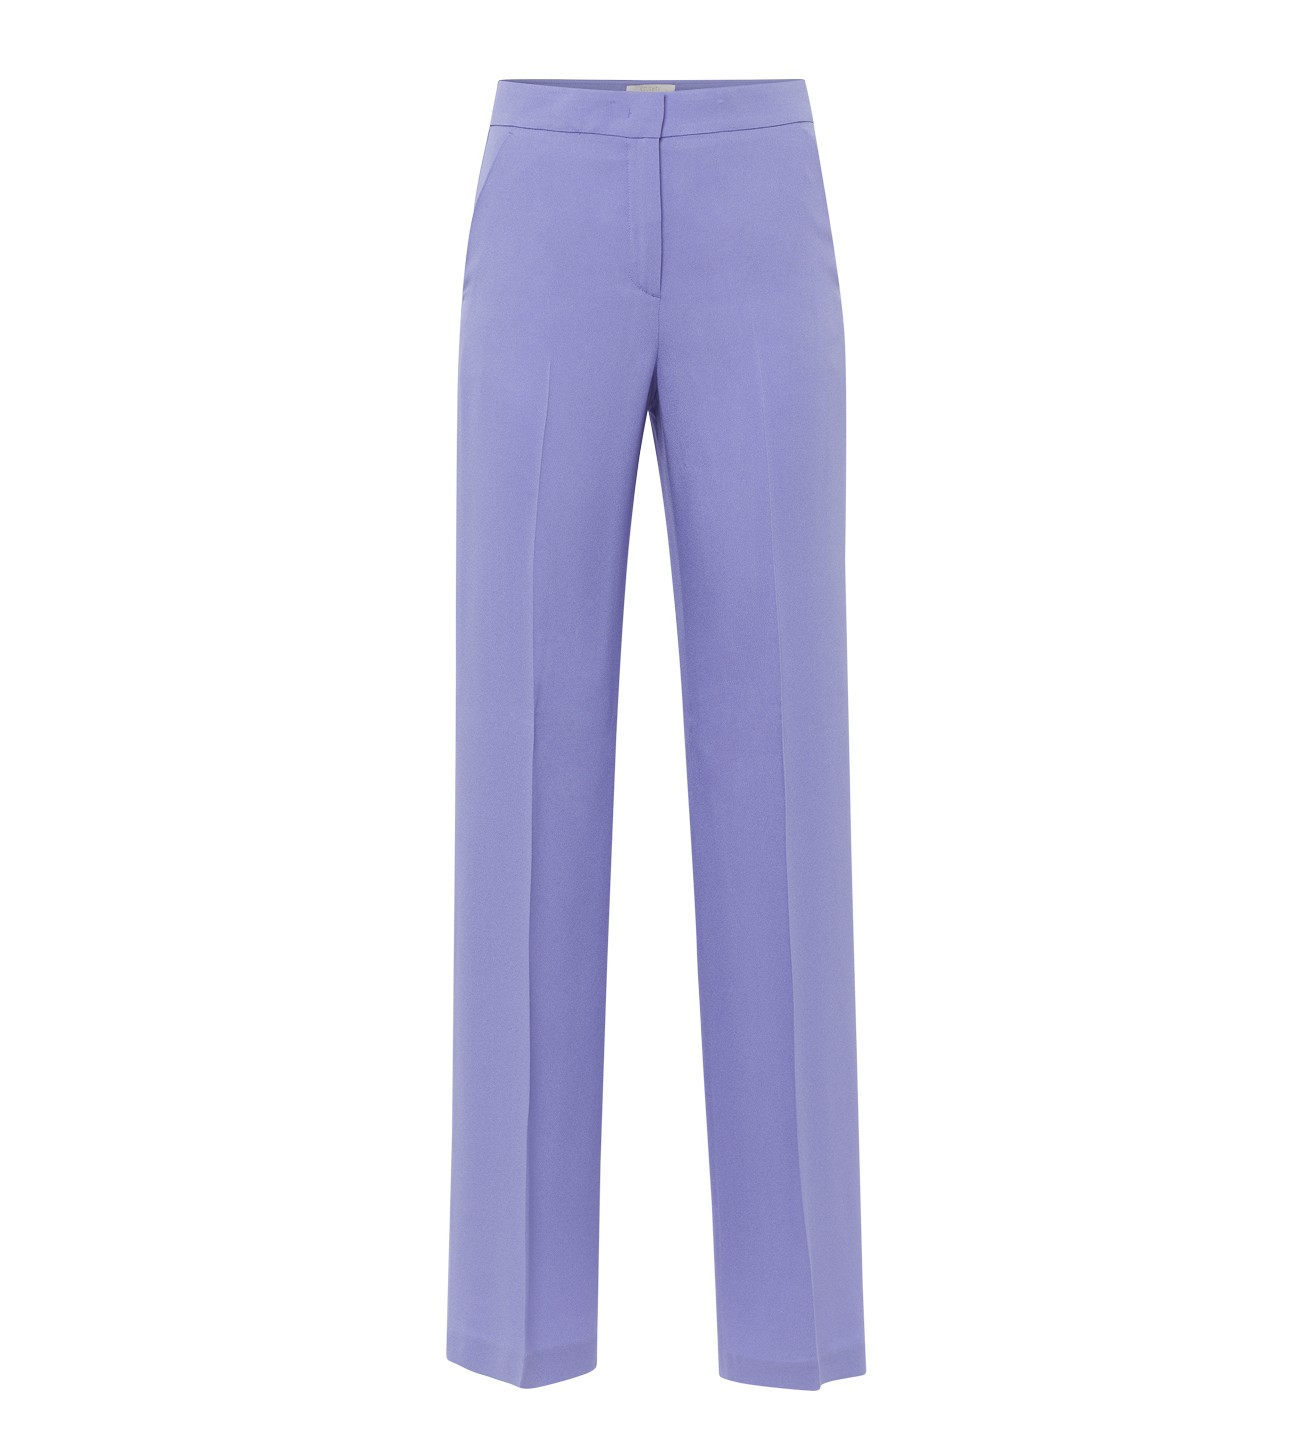 SEVENTY_STRAIGHT_FIT_CREPE_TROUSERS_MARIONA_FASHION_CLOTHING_WOMAN_SHOP_ONLINE_PT0703